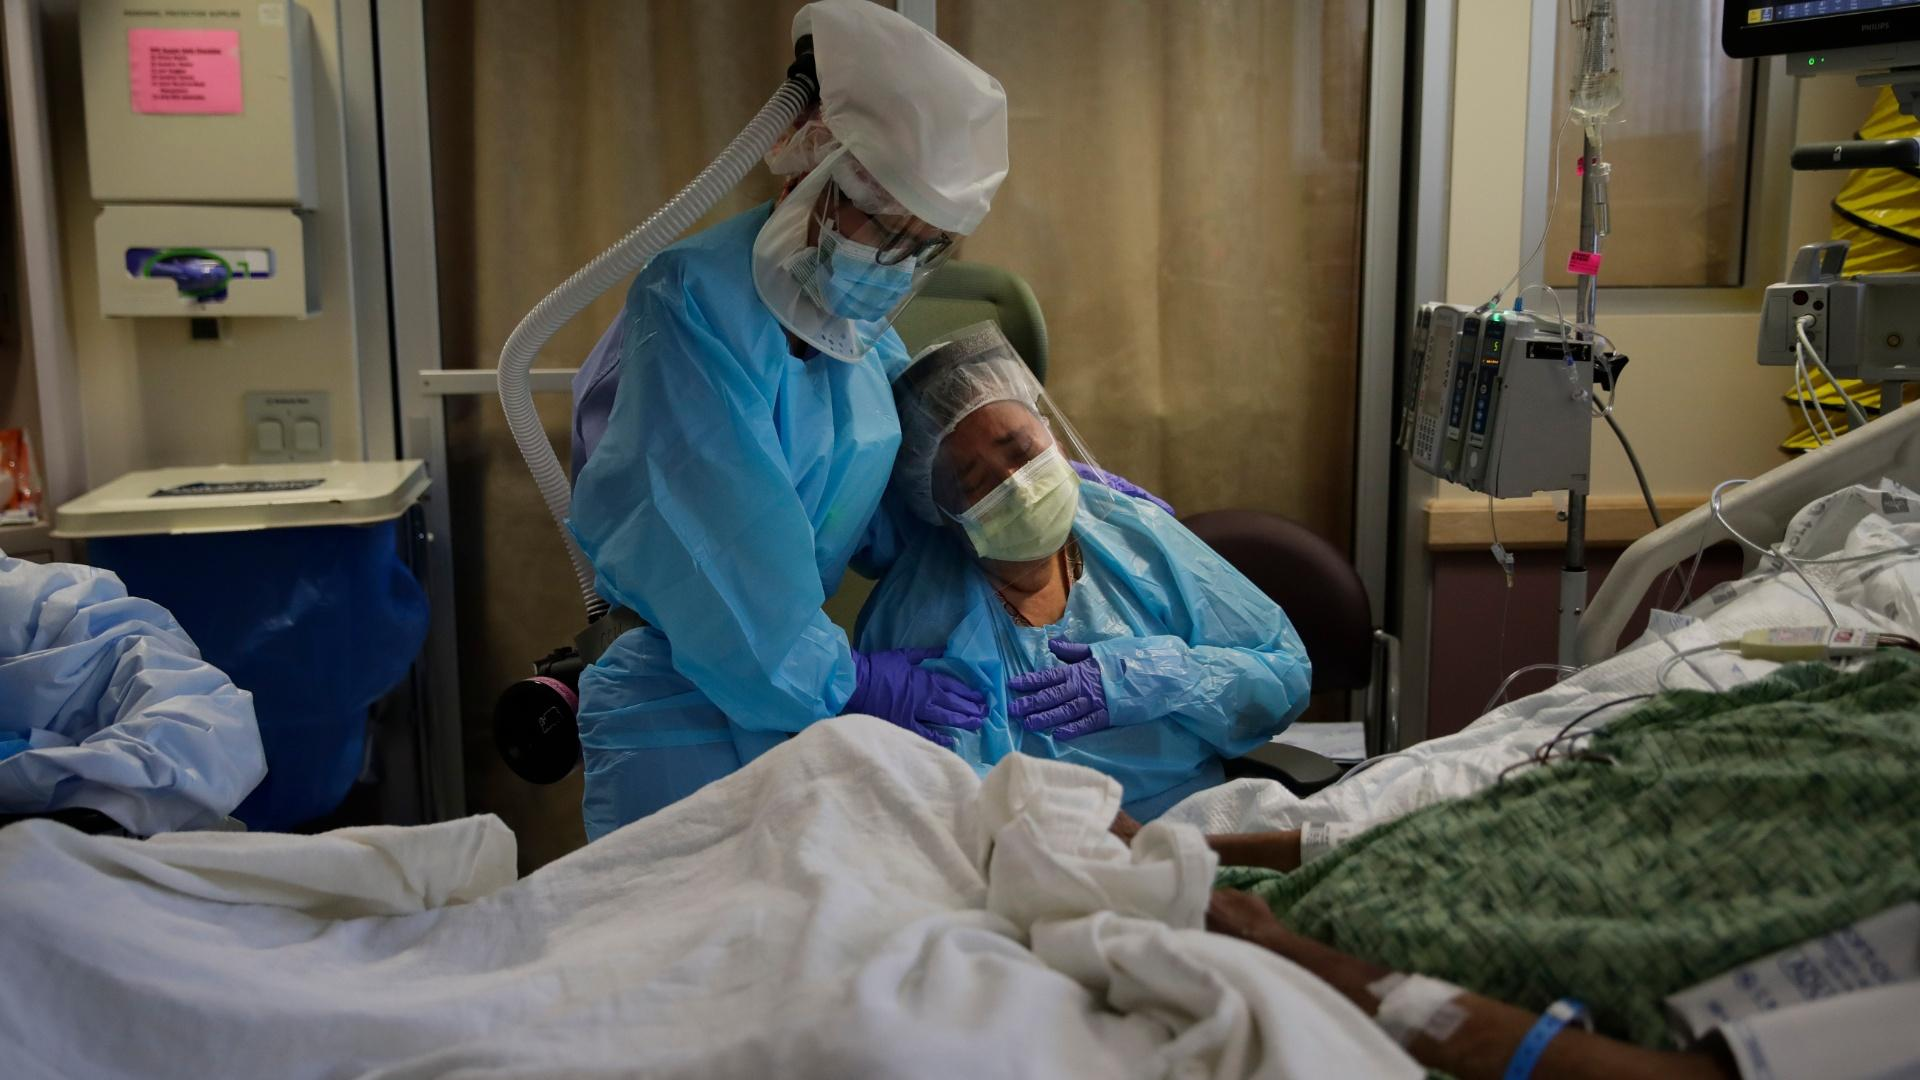 In this July 31, 2020, file photo, Romelia Navarro, right, is comforted by nurse Michele Younkin as she weeps while sitting at the bedside of her dying husband, Antonio, in St. Jude Medical Center's COVID-19 unit in Fullerton, Calif. (AP Photo / Jae C. Hong, File)